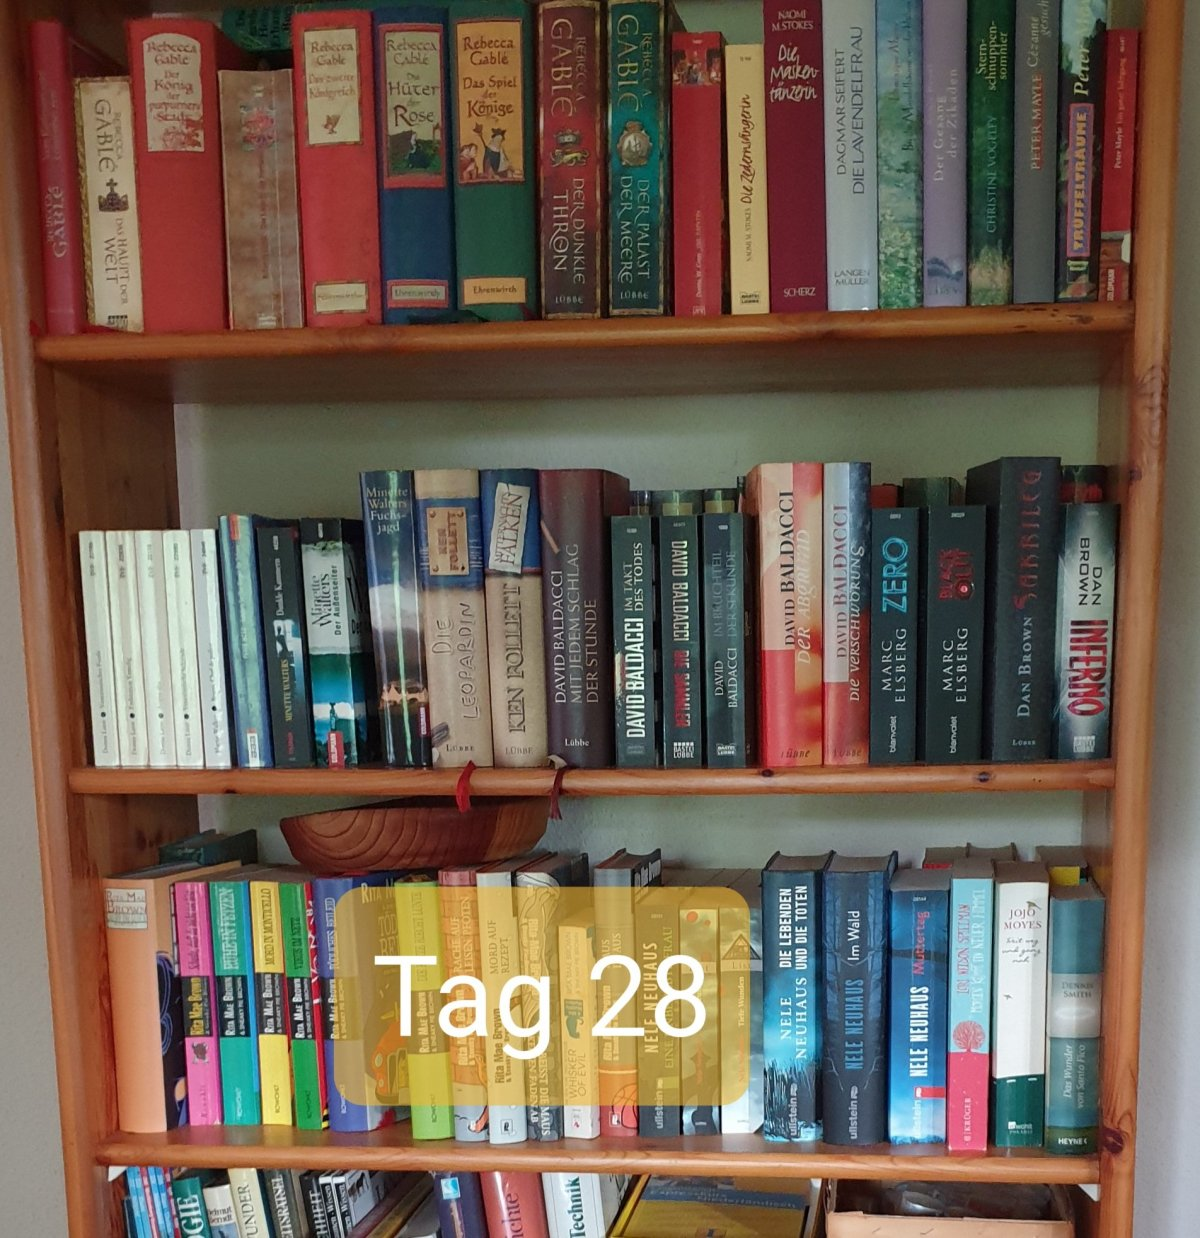 30 Days Book Challenge – Tag28